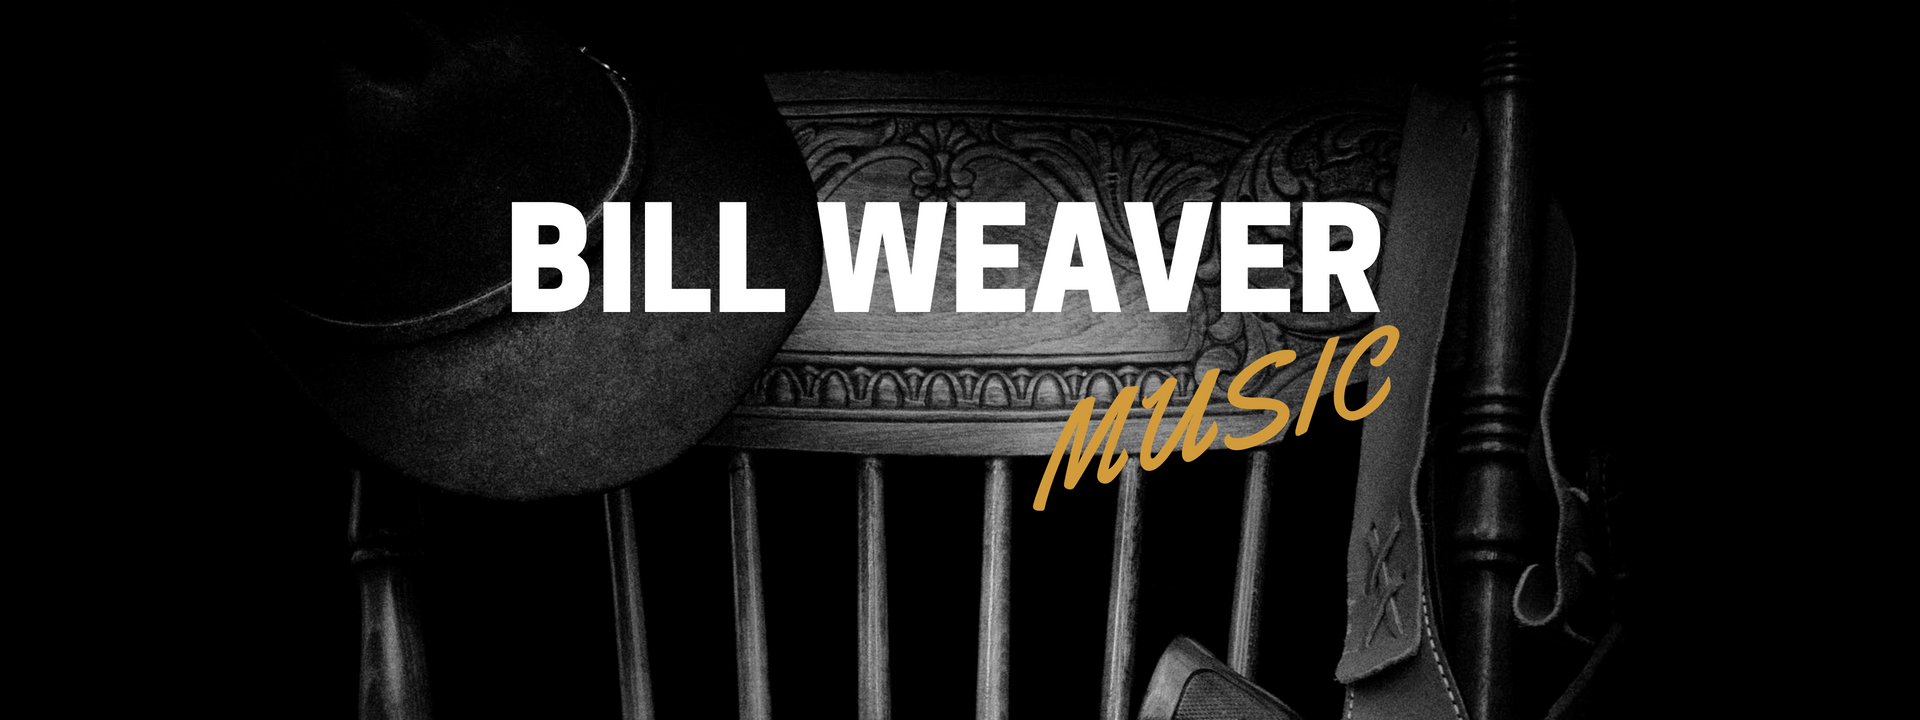 Welcome to Bill Weaver Music